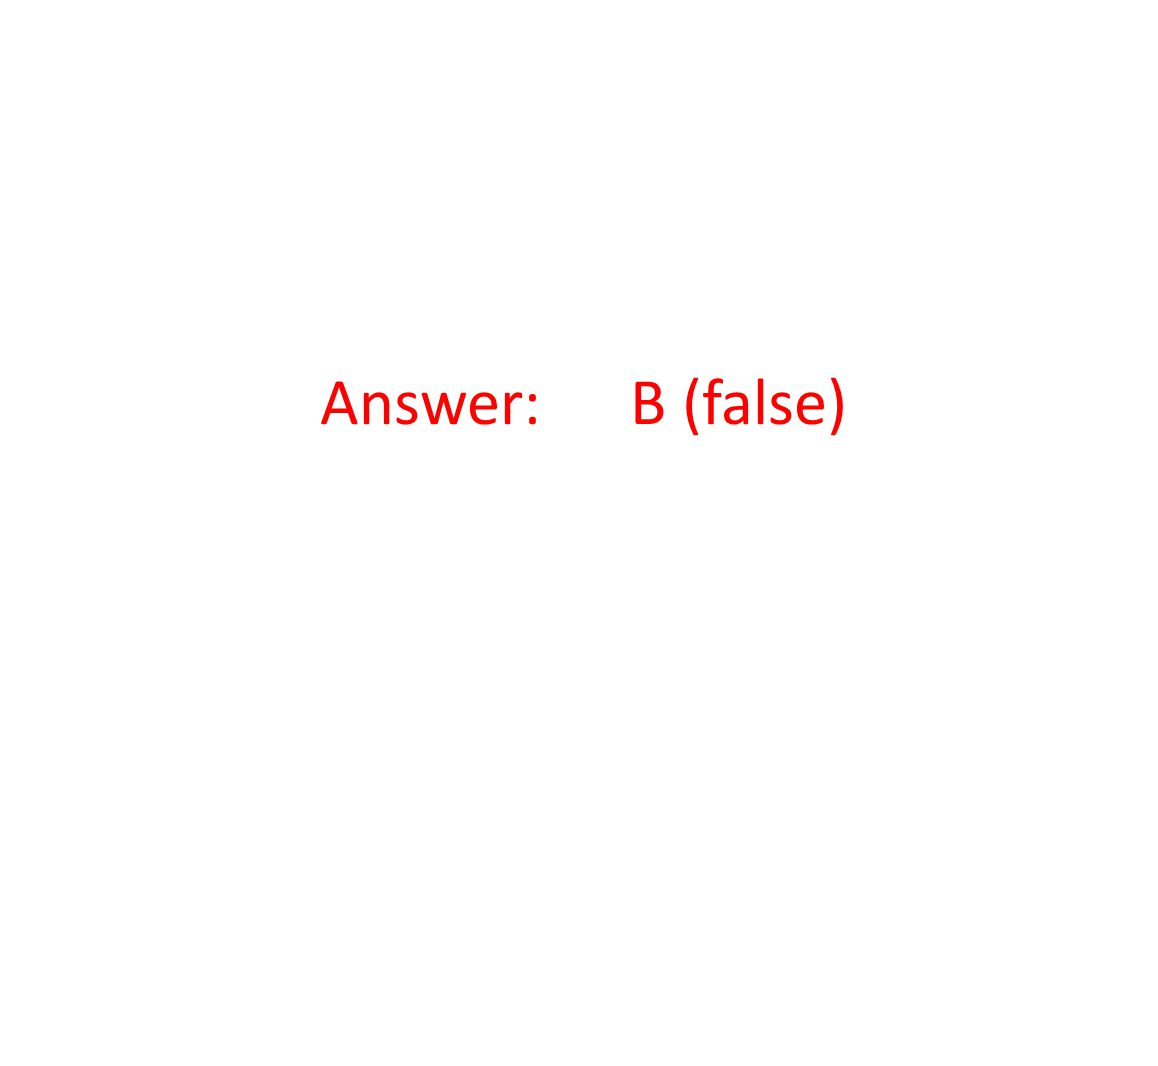 Answer: B (false)